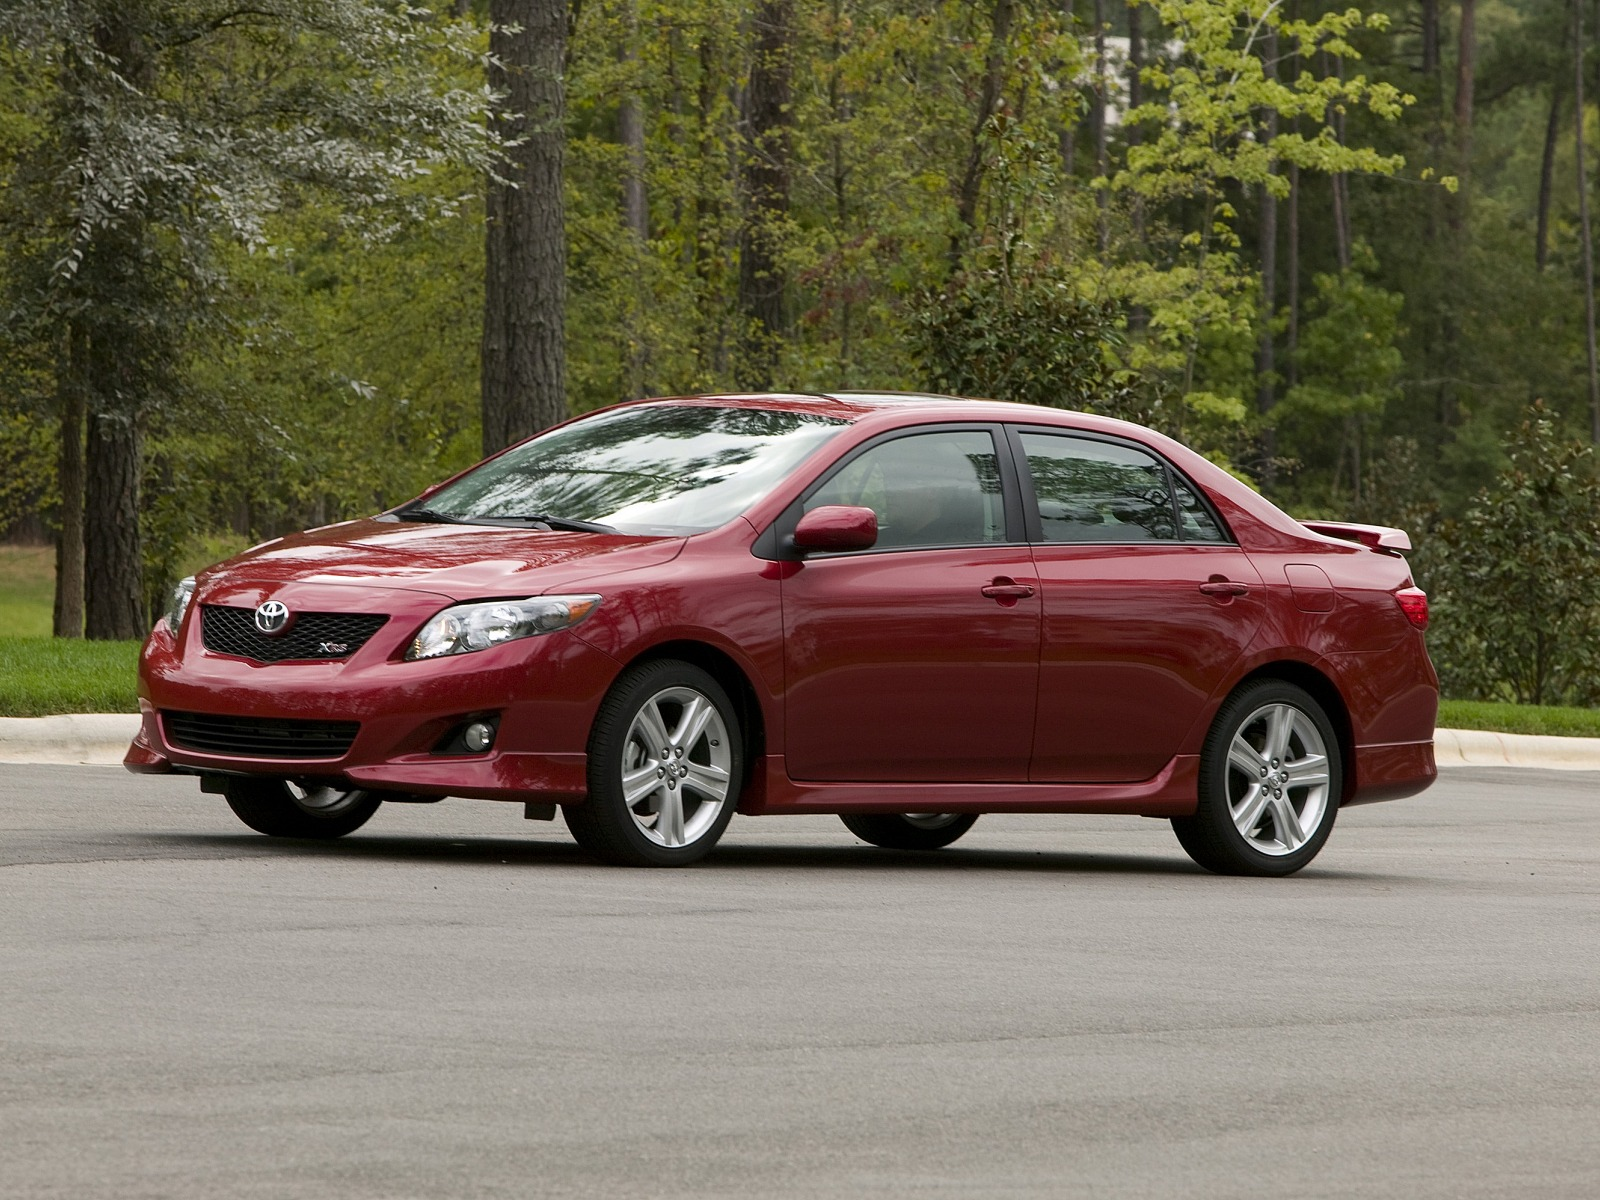 2009 toyota corolla xrs pictures. Black Bedroom Furniture Sets. Home Design Ideas